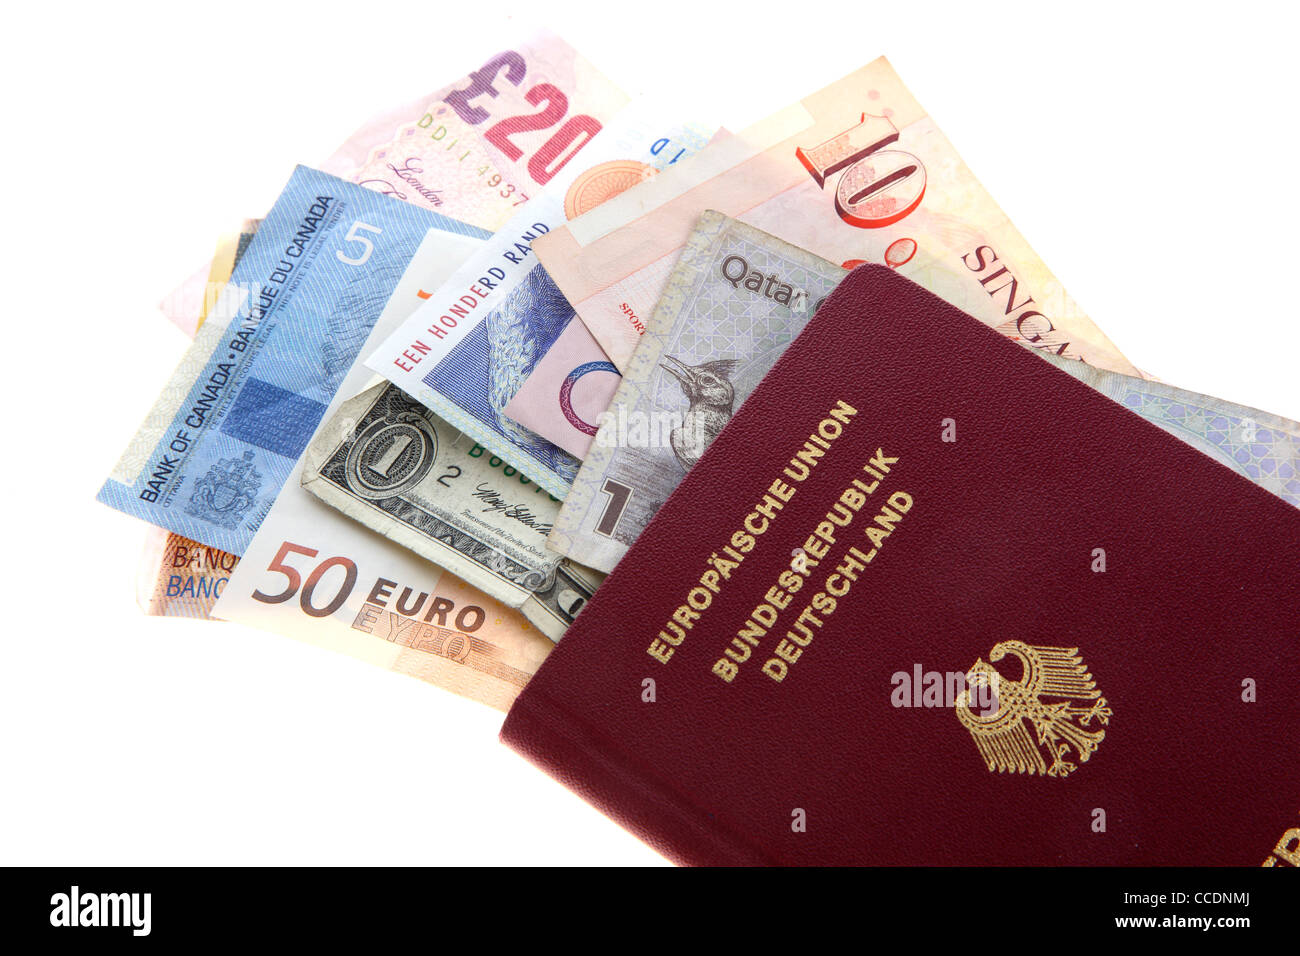 Travel documents, passport and different currencies, bank notes, cash. - Stock Image